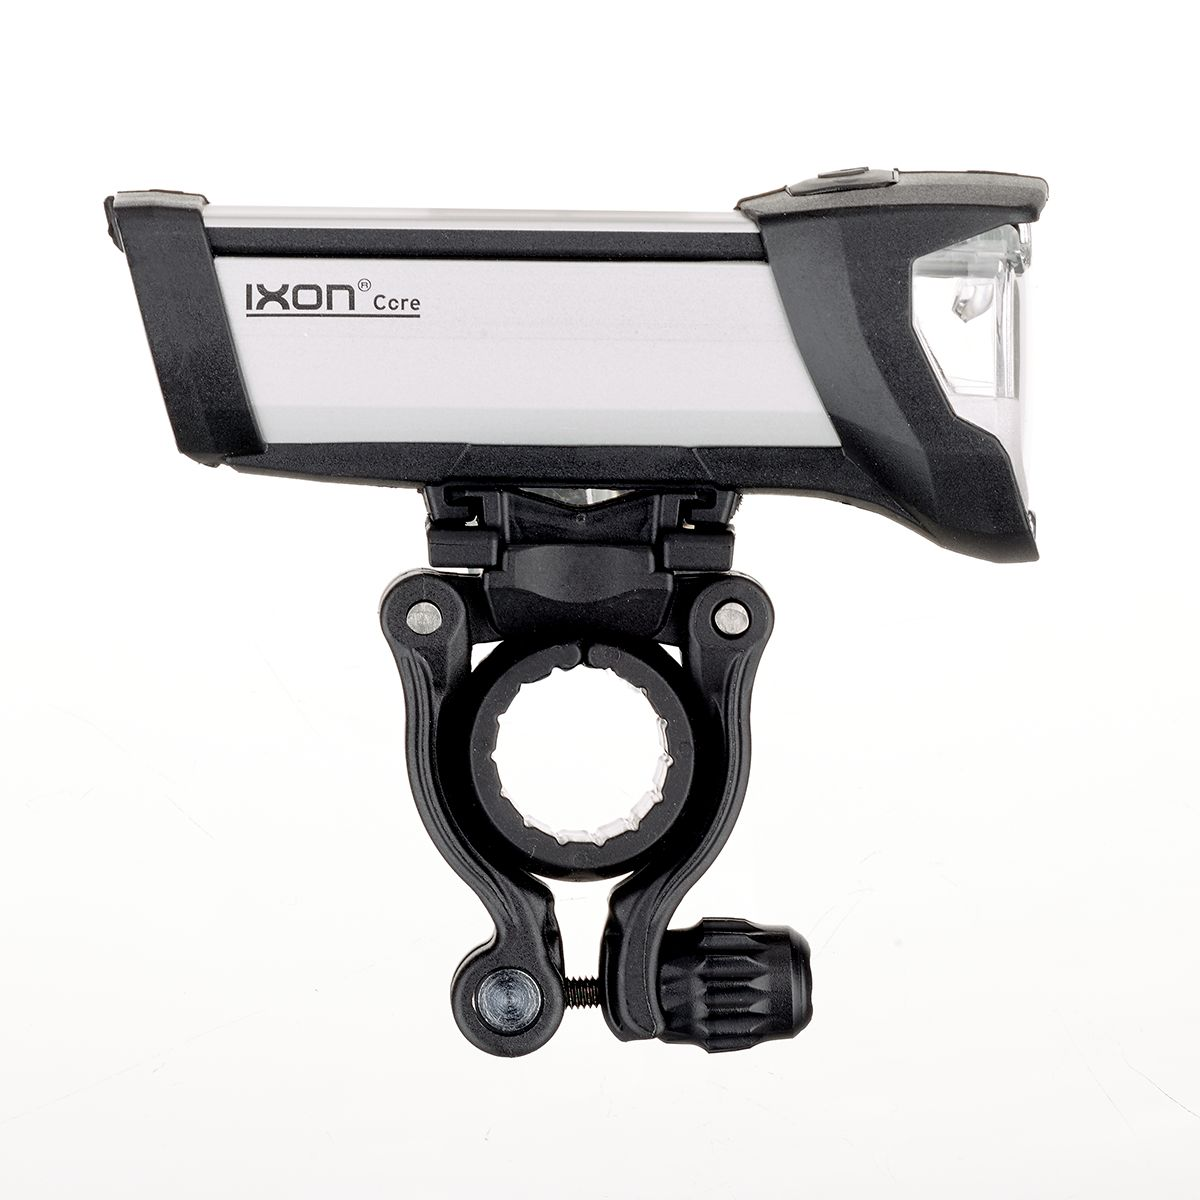 Ixon Core LED front light